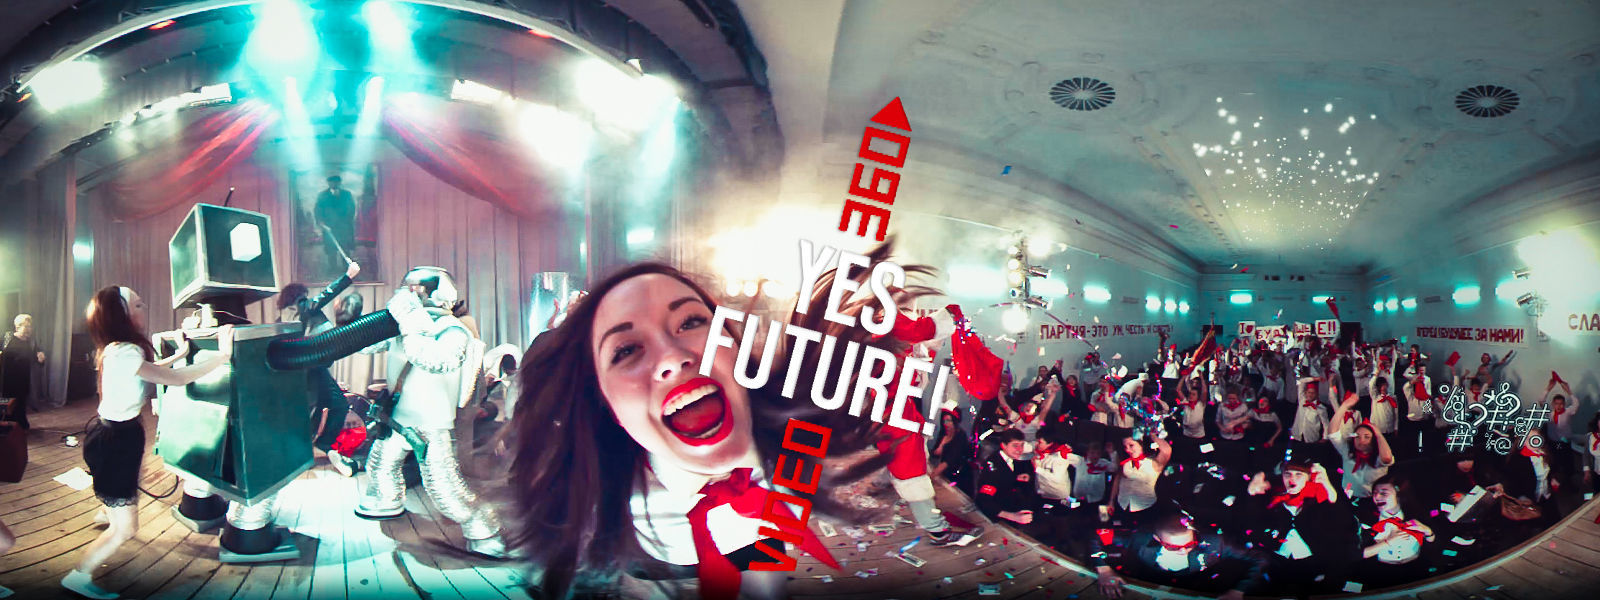 noize mc yes future official video